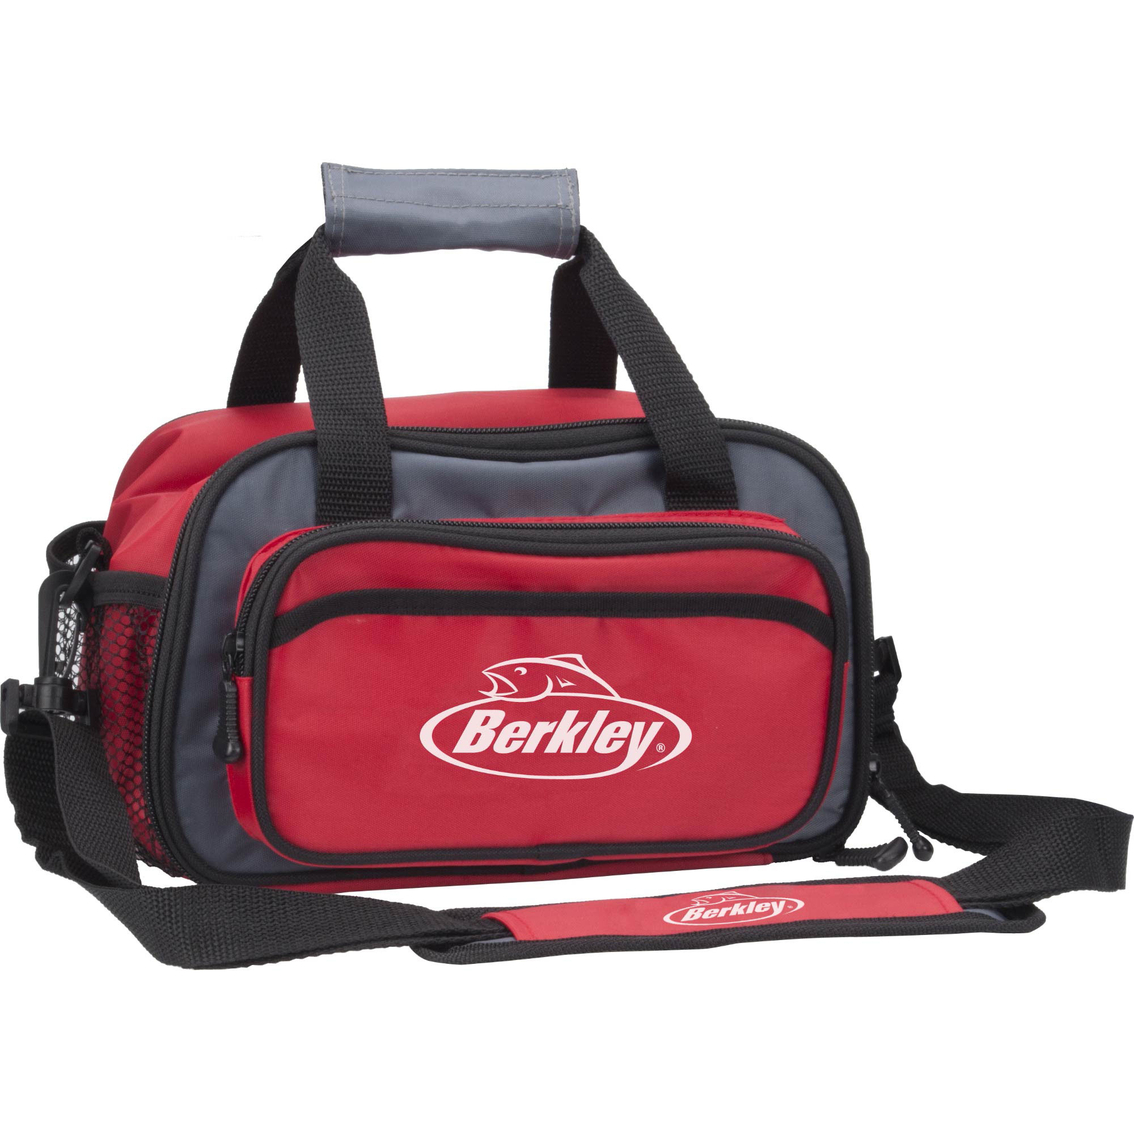 Berkley powerbait small tackle bag fishing accessories for Fishing tackle bag